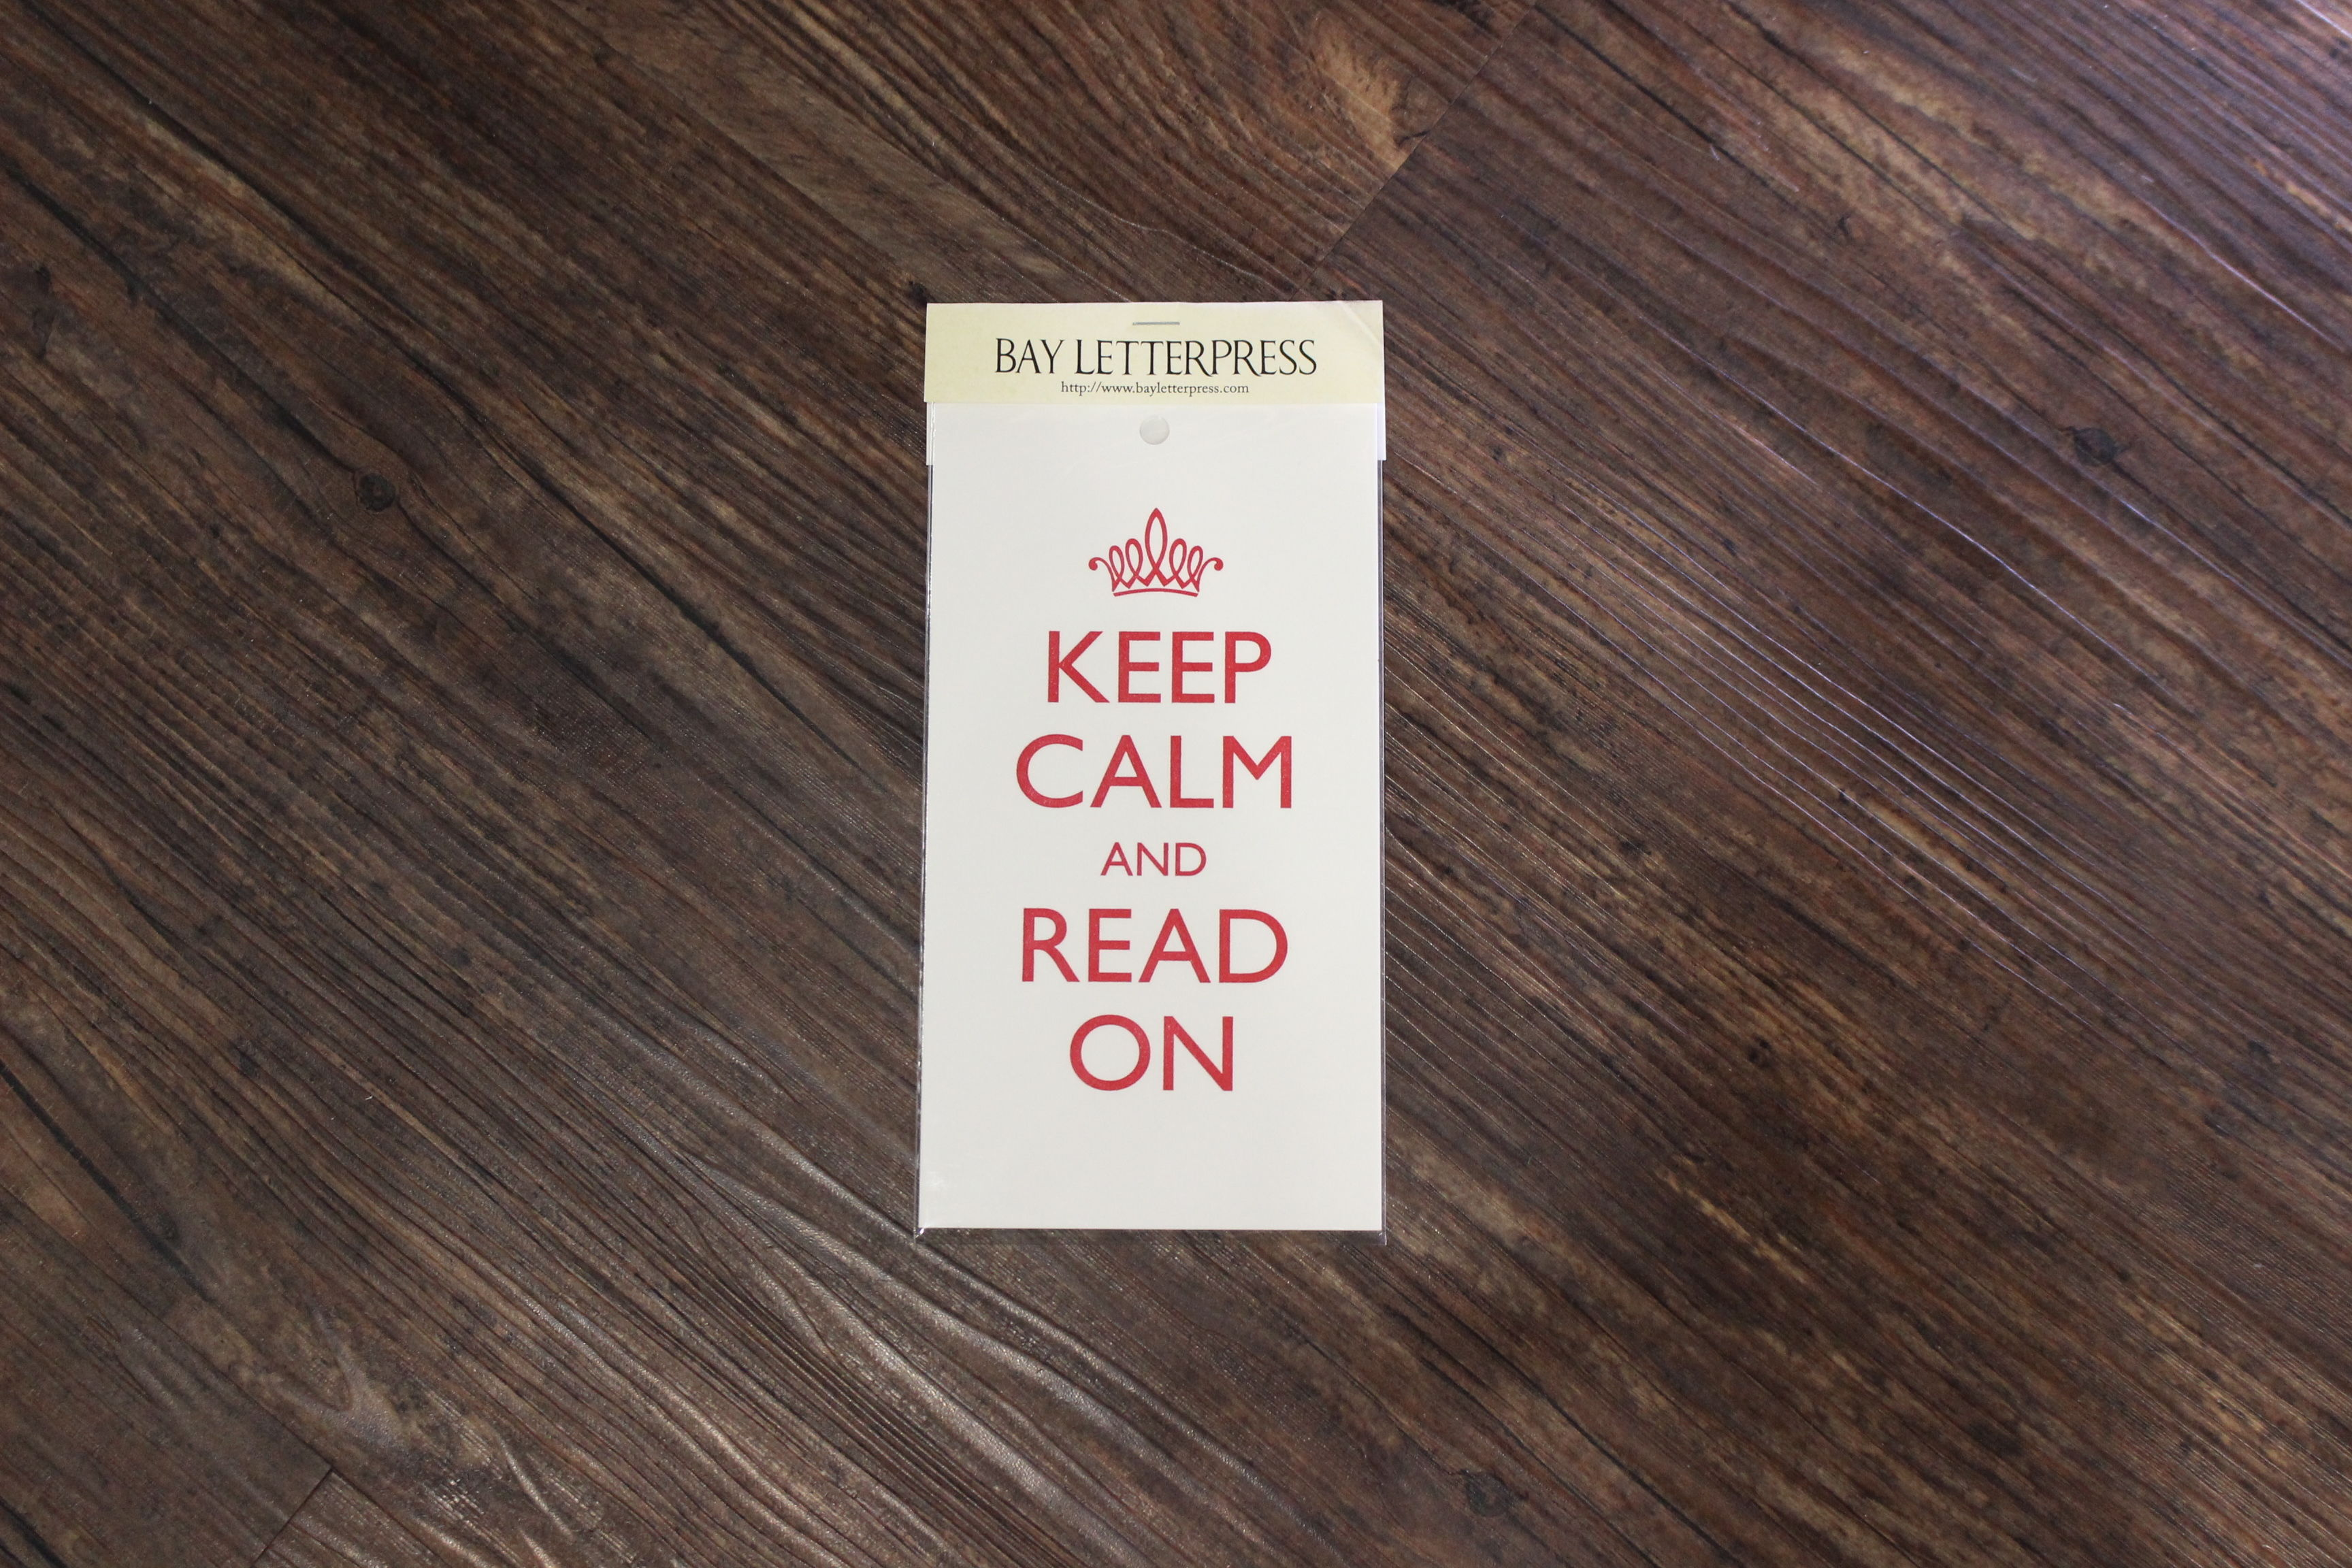 KEEP CALM AND READ ON(red)のミニポスター